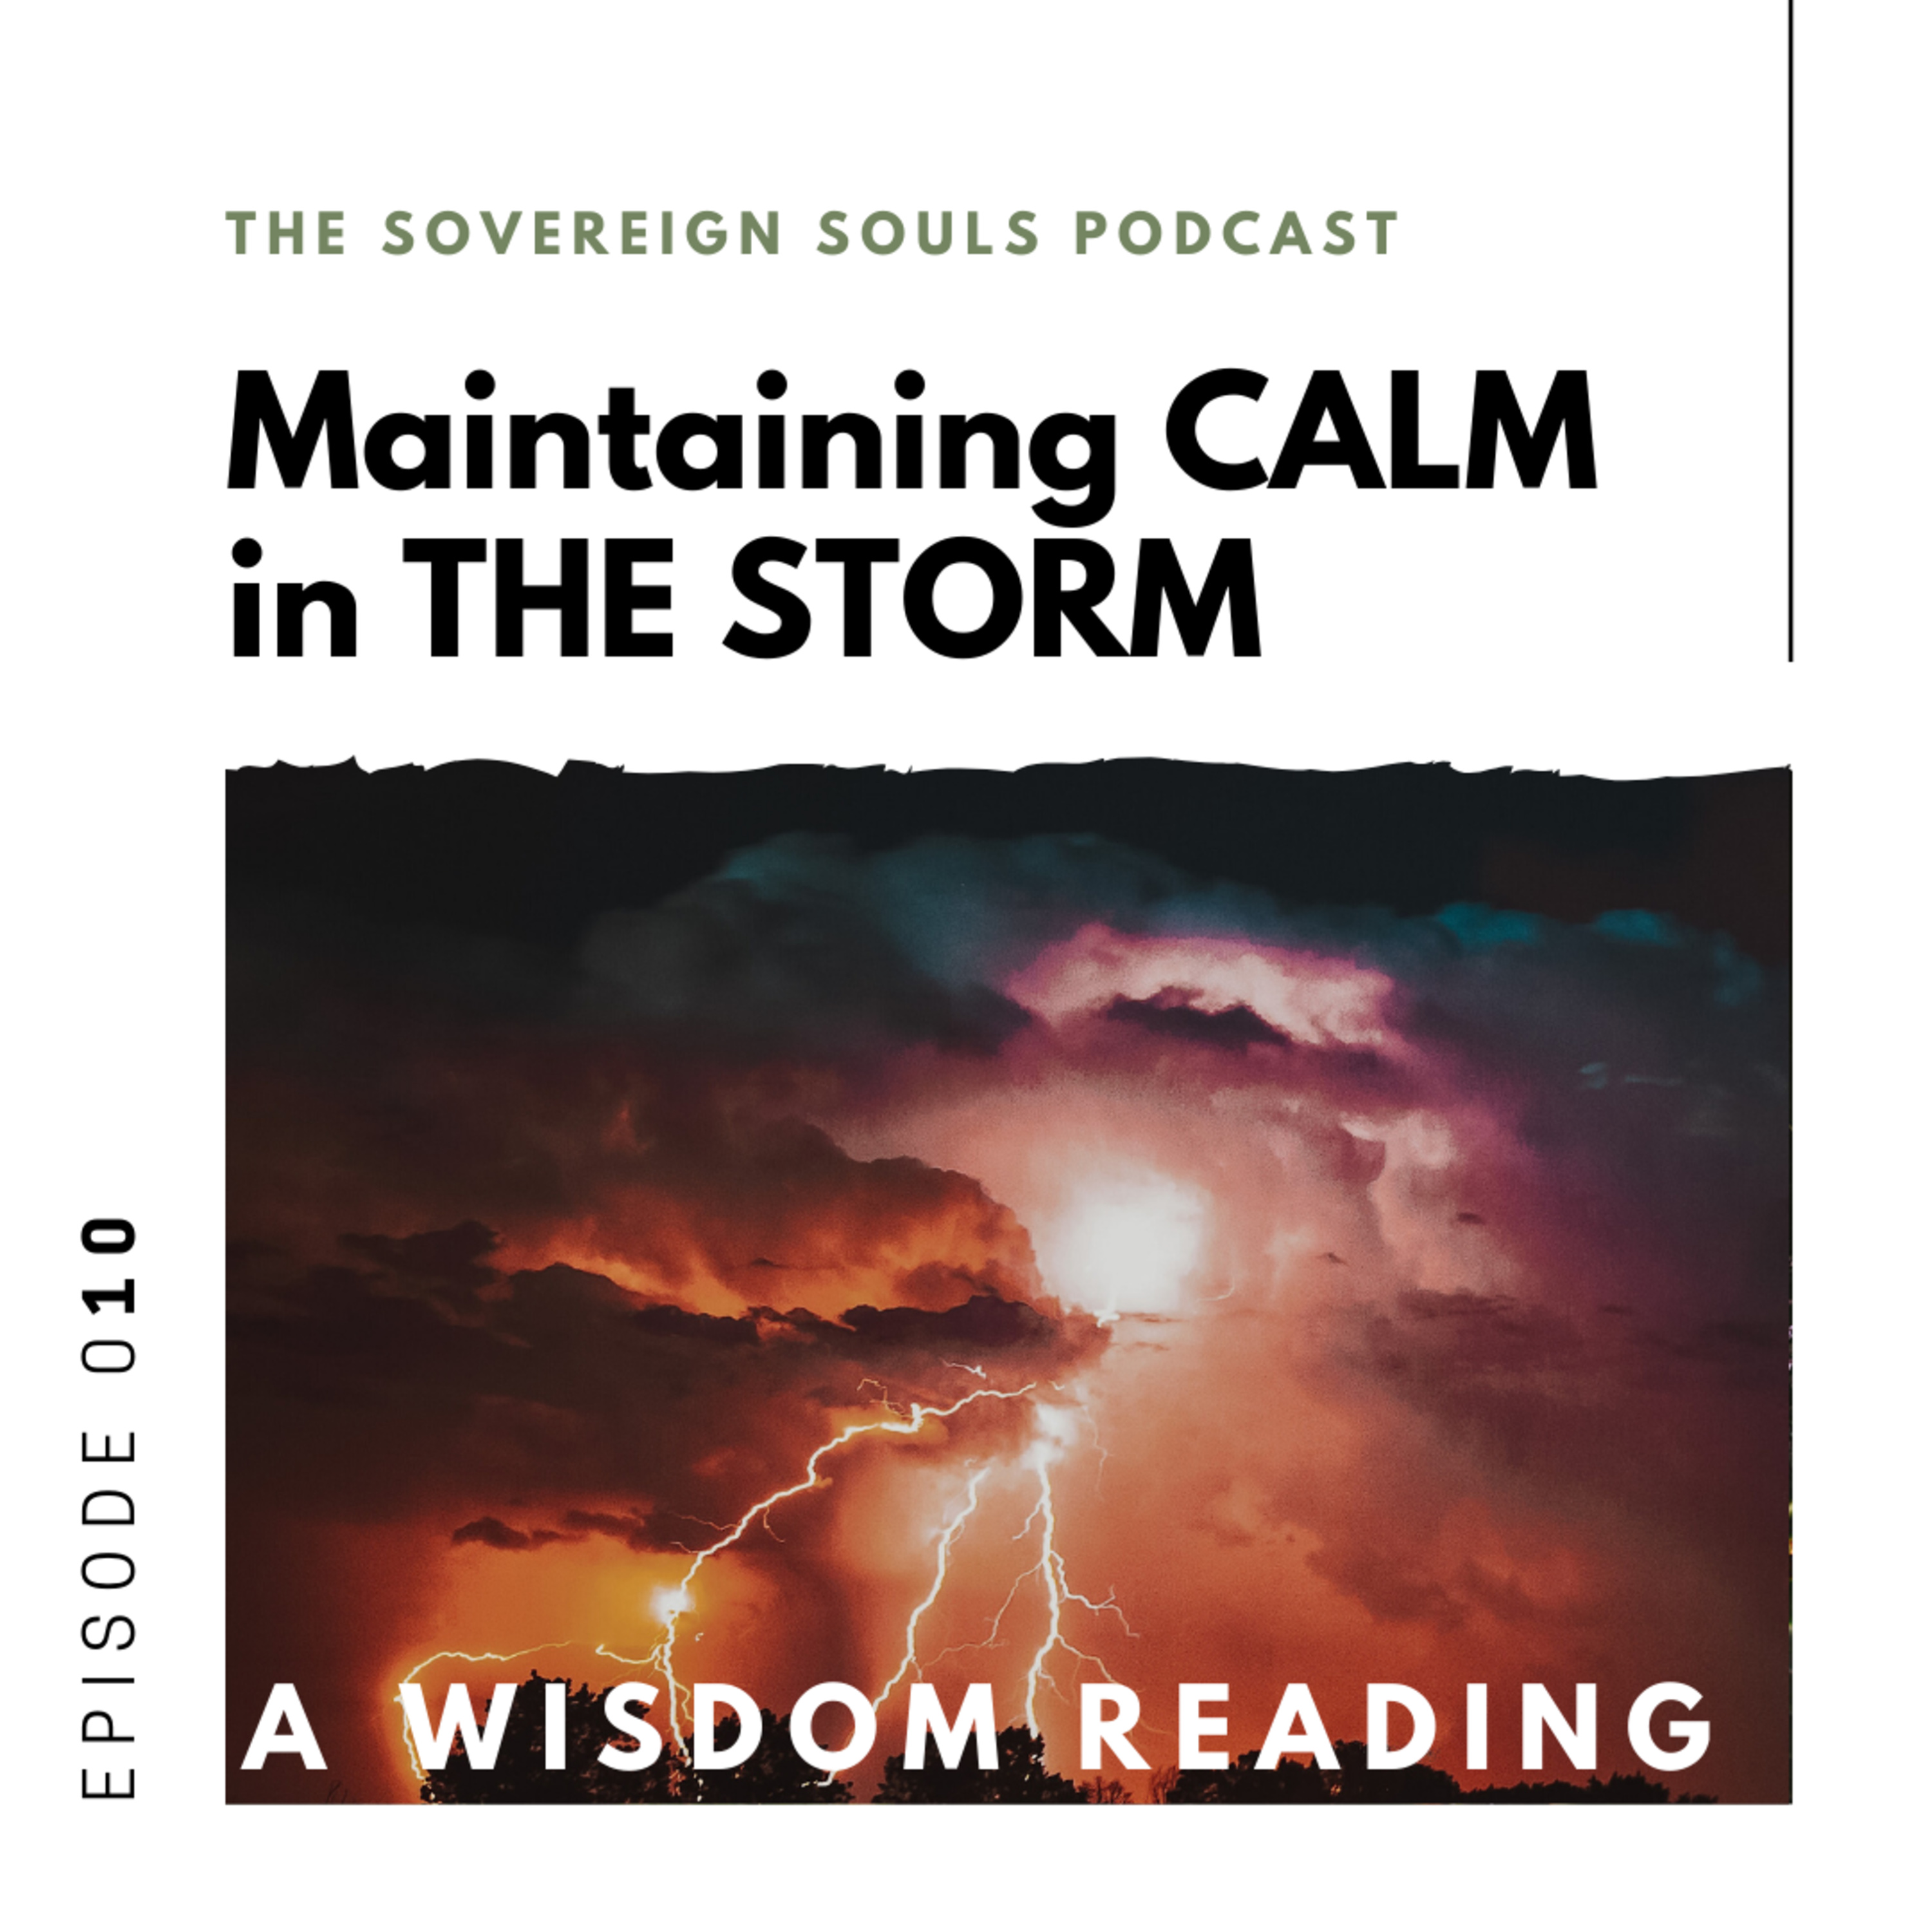 010. Maintaining Calm in The Storm | Wisdom Readings - Energetic Synthesis